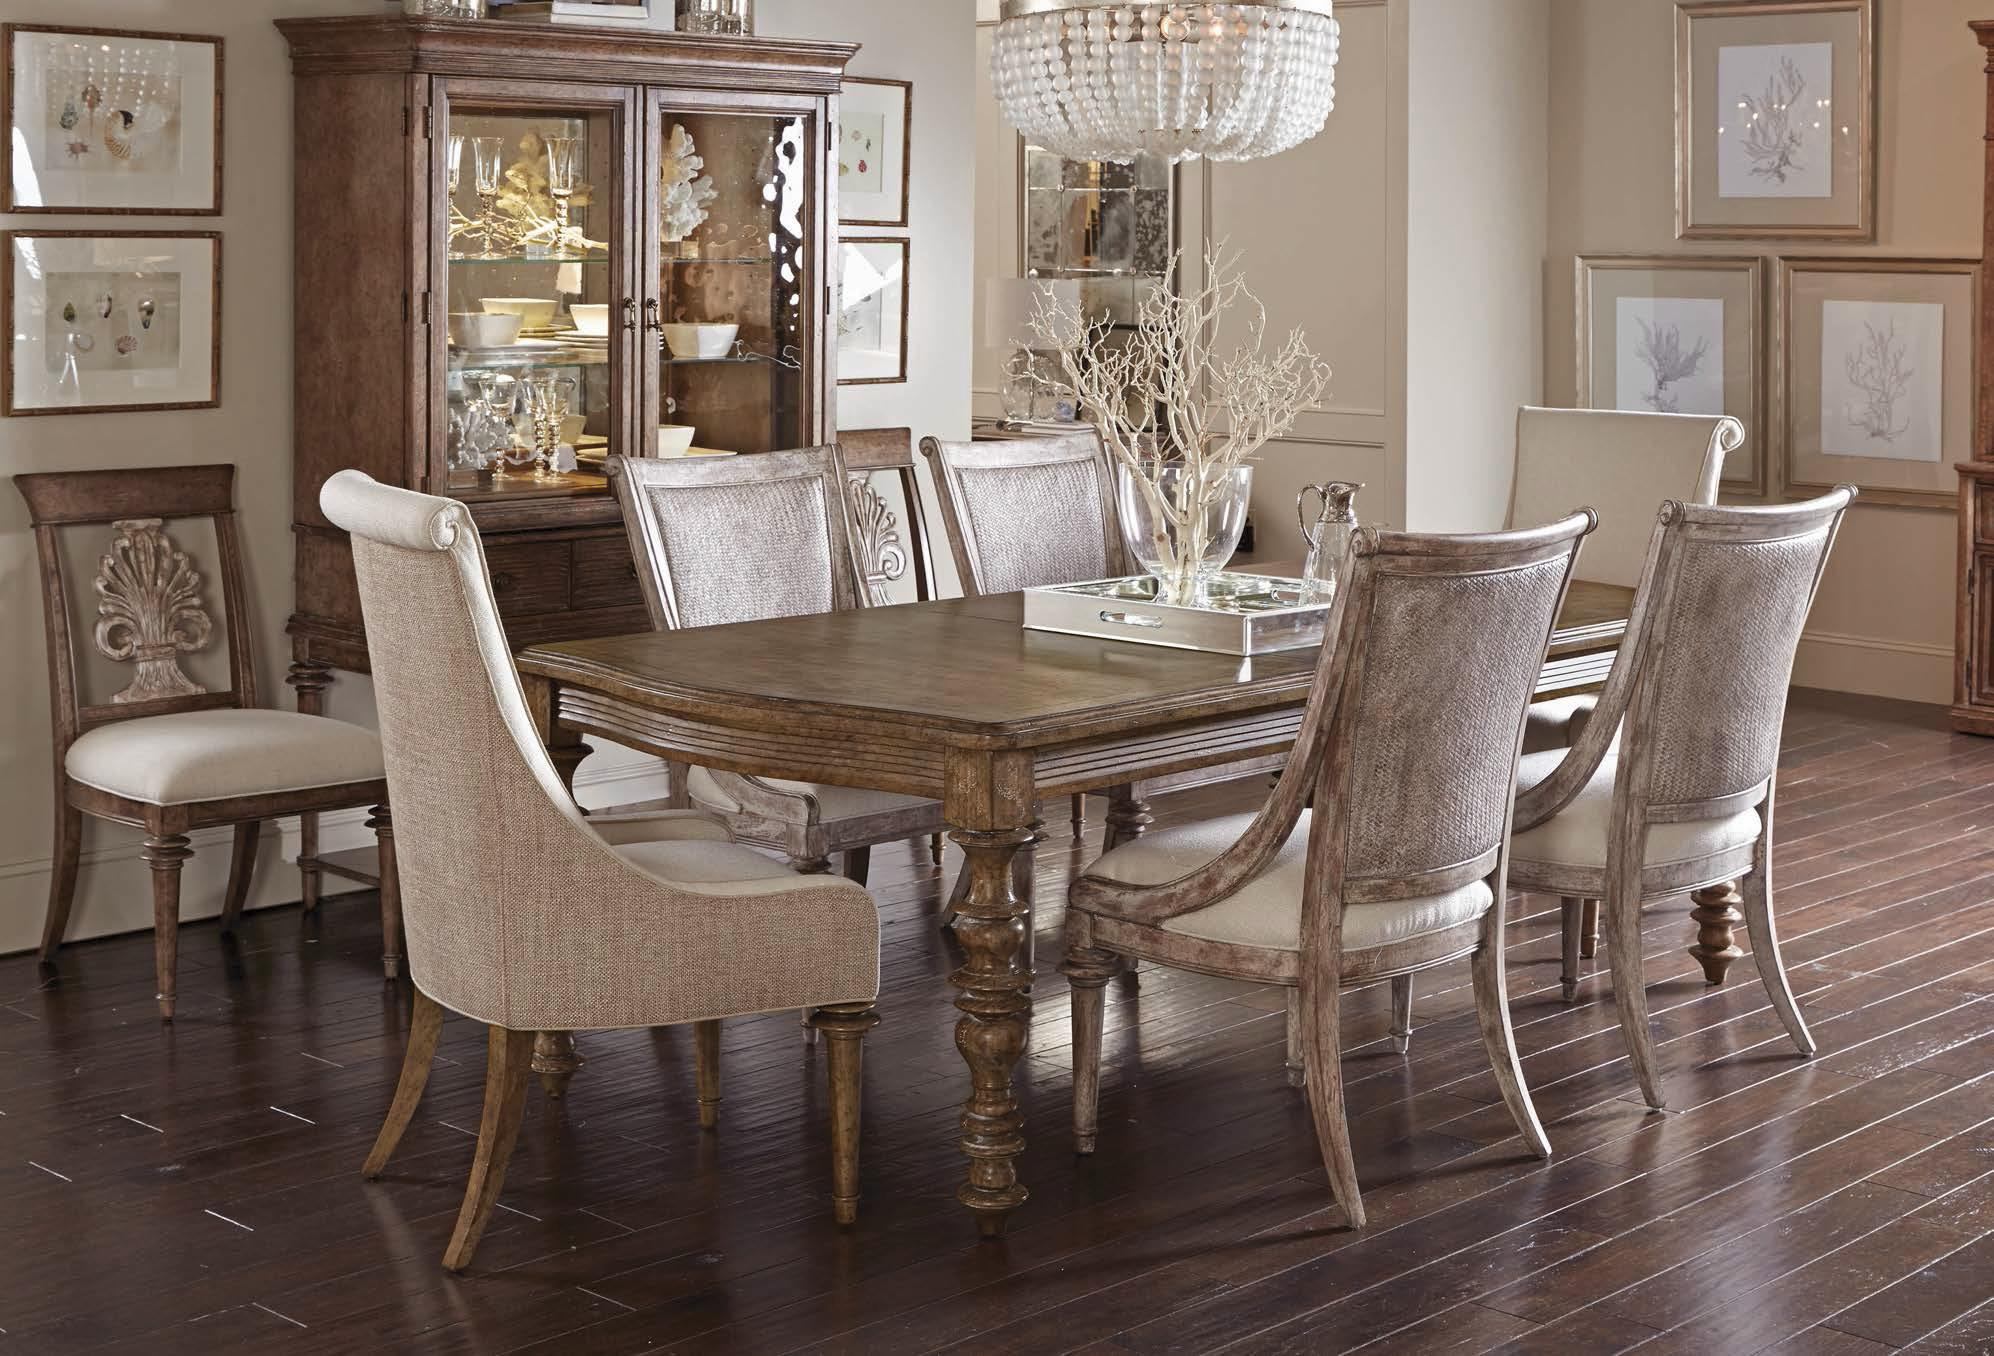 Leg Dining Table With Turned Legs